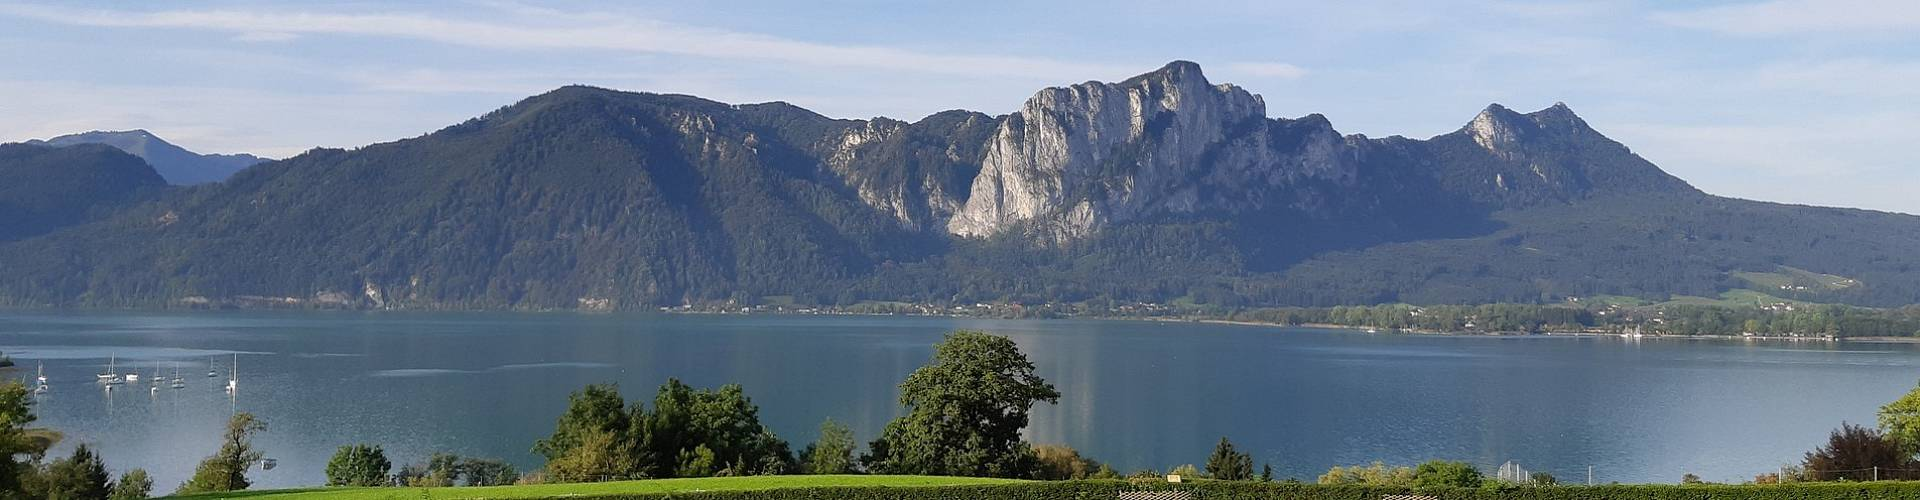 RE/MAX ImmoCenter in Mondsee